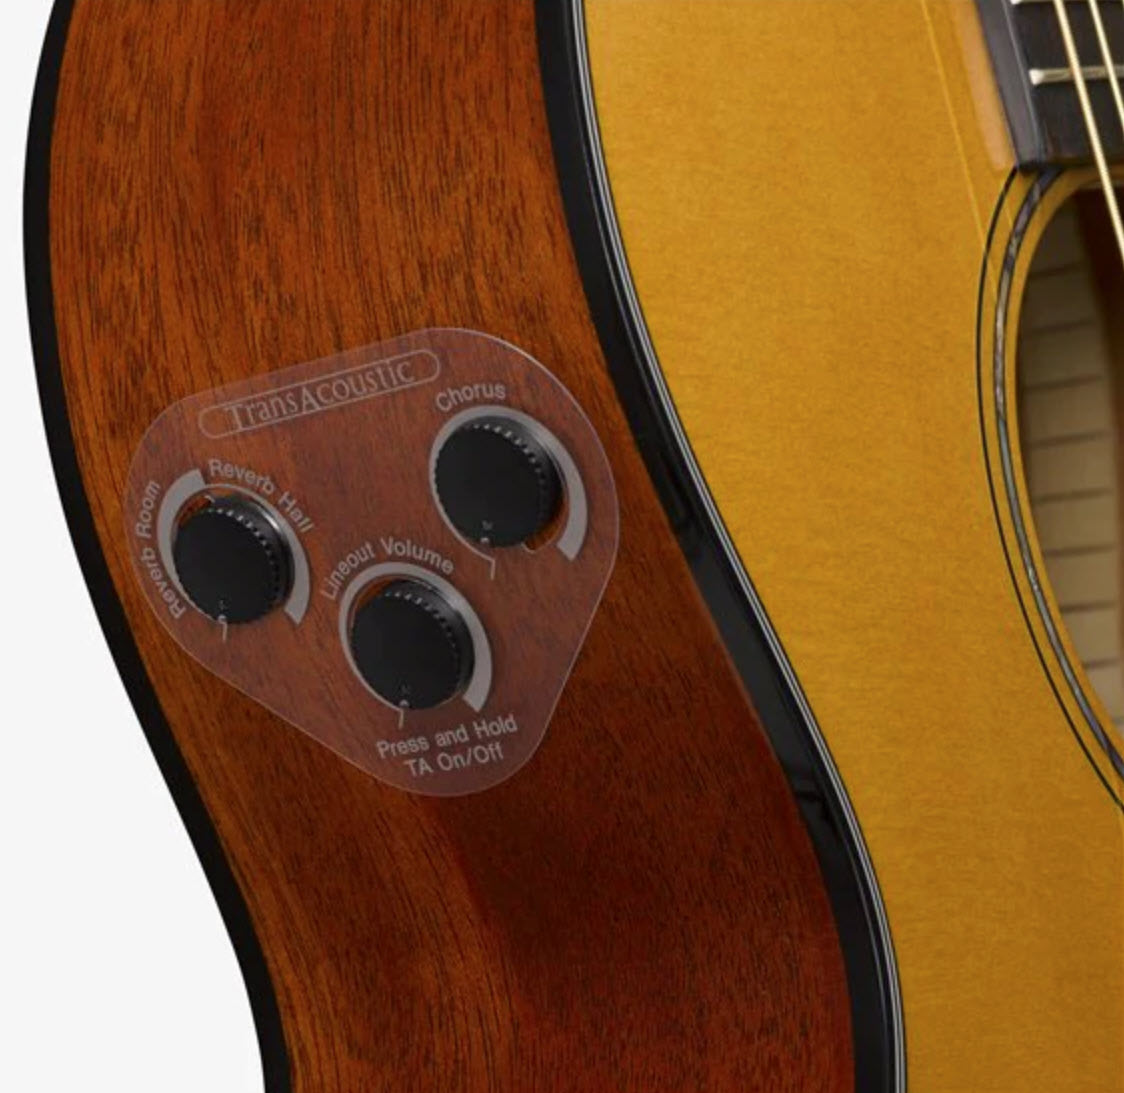 Closeup of three knobs on the side panel of an acoustic guitar.